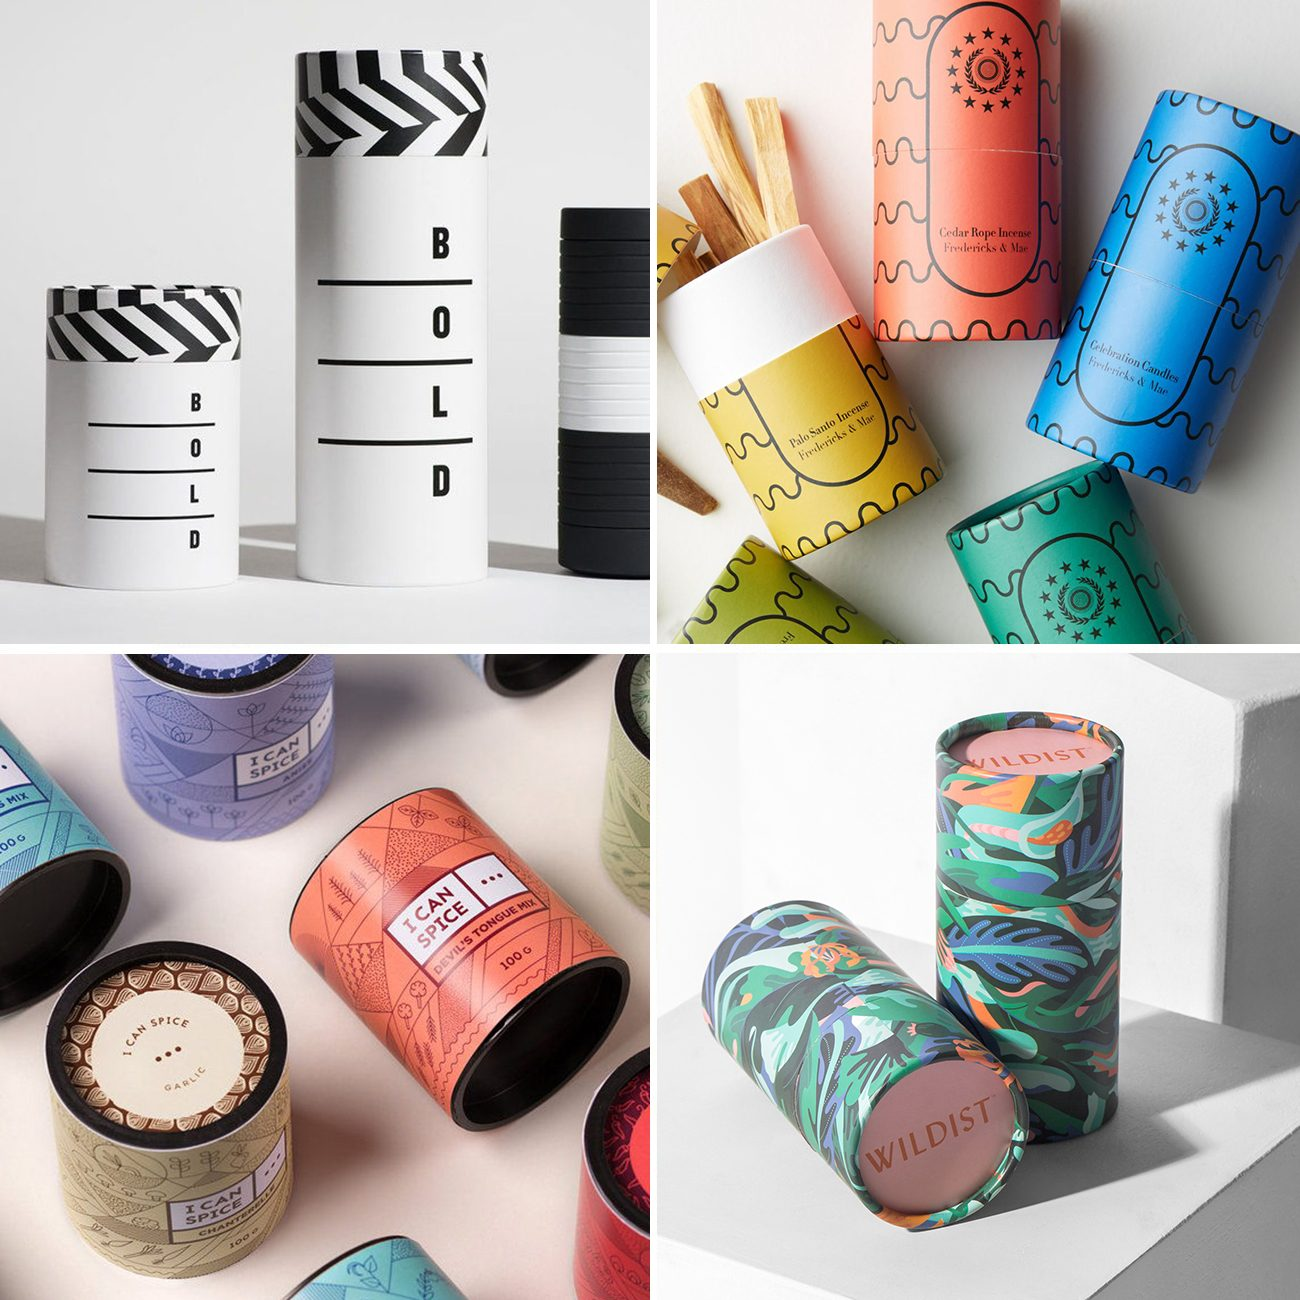 Photos via: Repina Branding, The Dieline, Fredericks and Mae, I Can Spice, Lumi 90 Ideas to Spruce Up Your Holiday Packaging Design